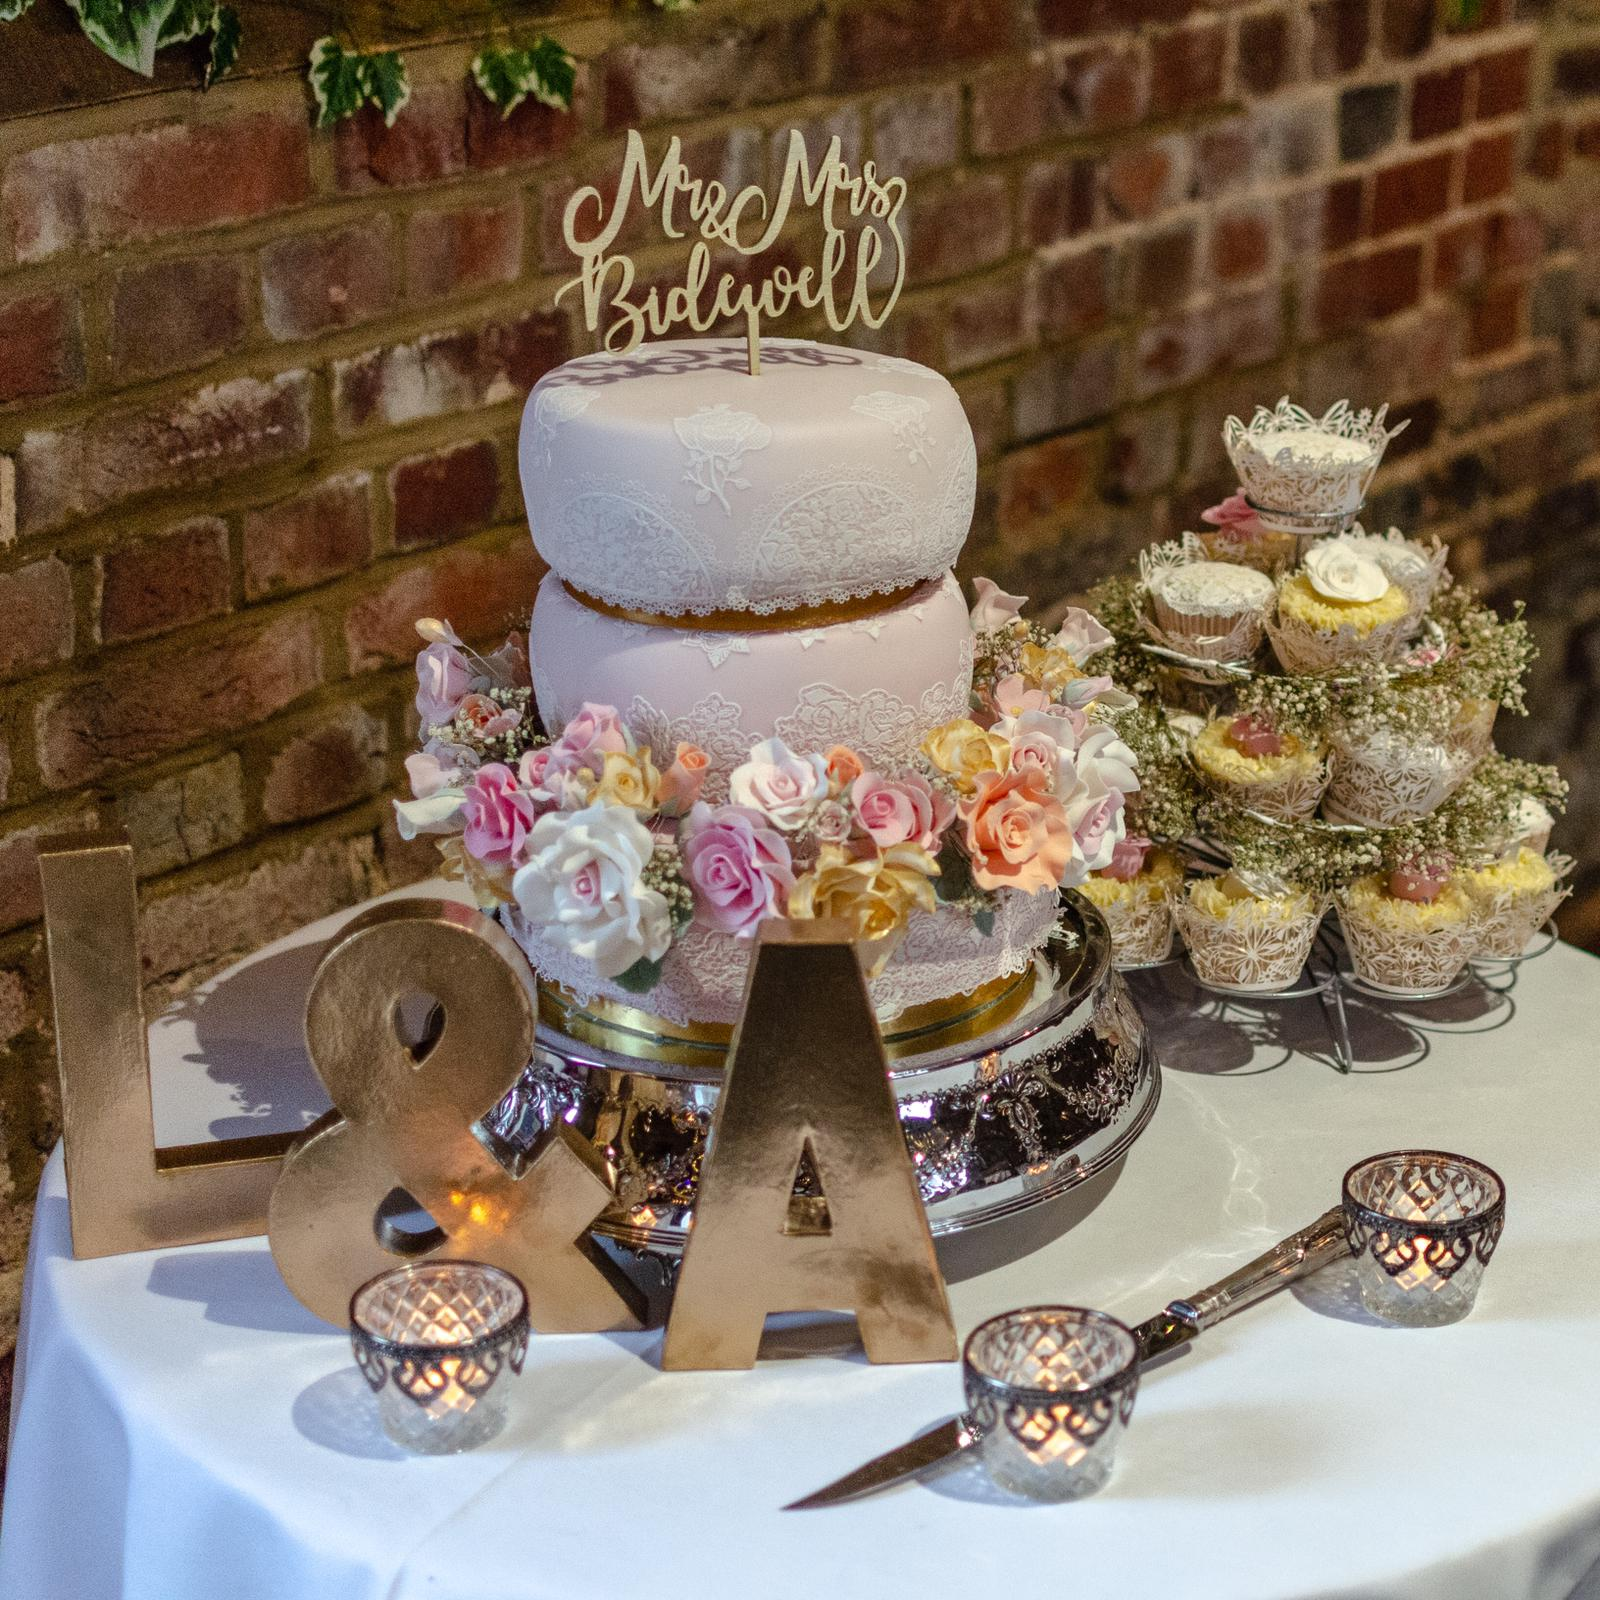 Rustic inspired wedding cake and decorations on table